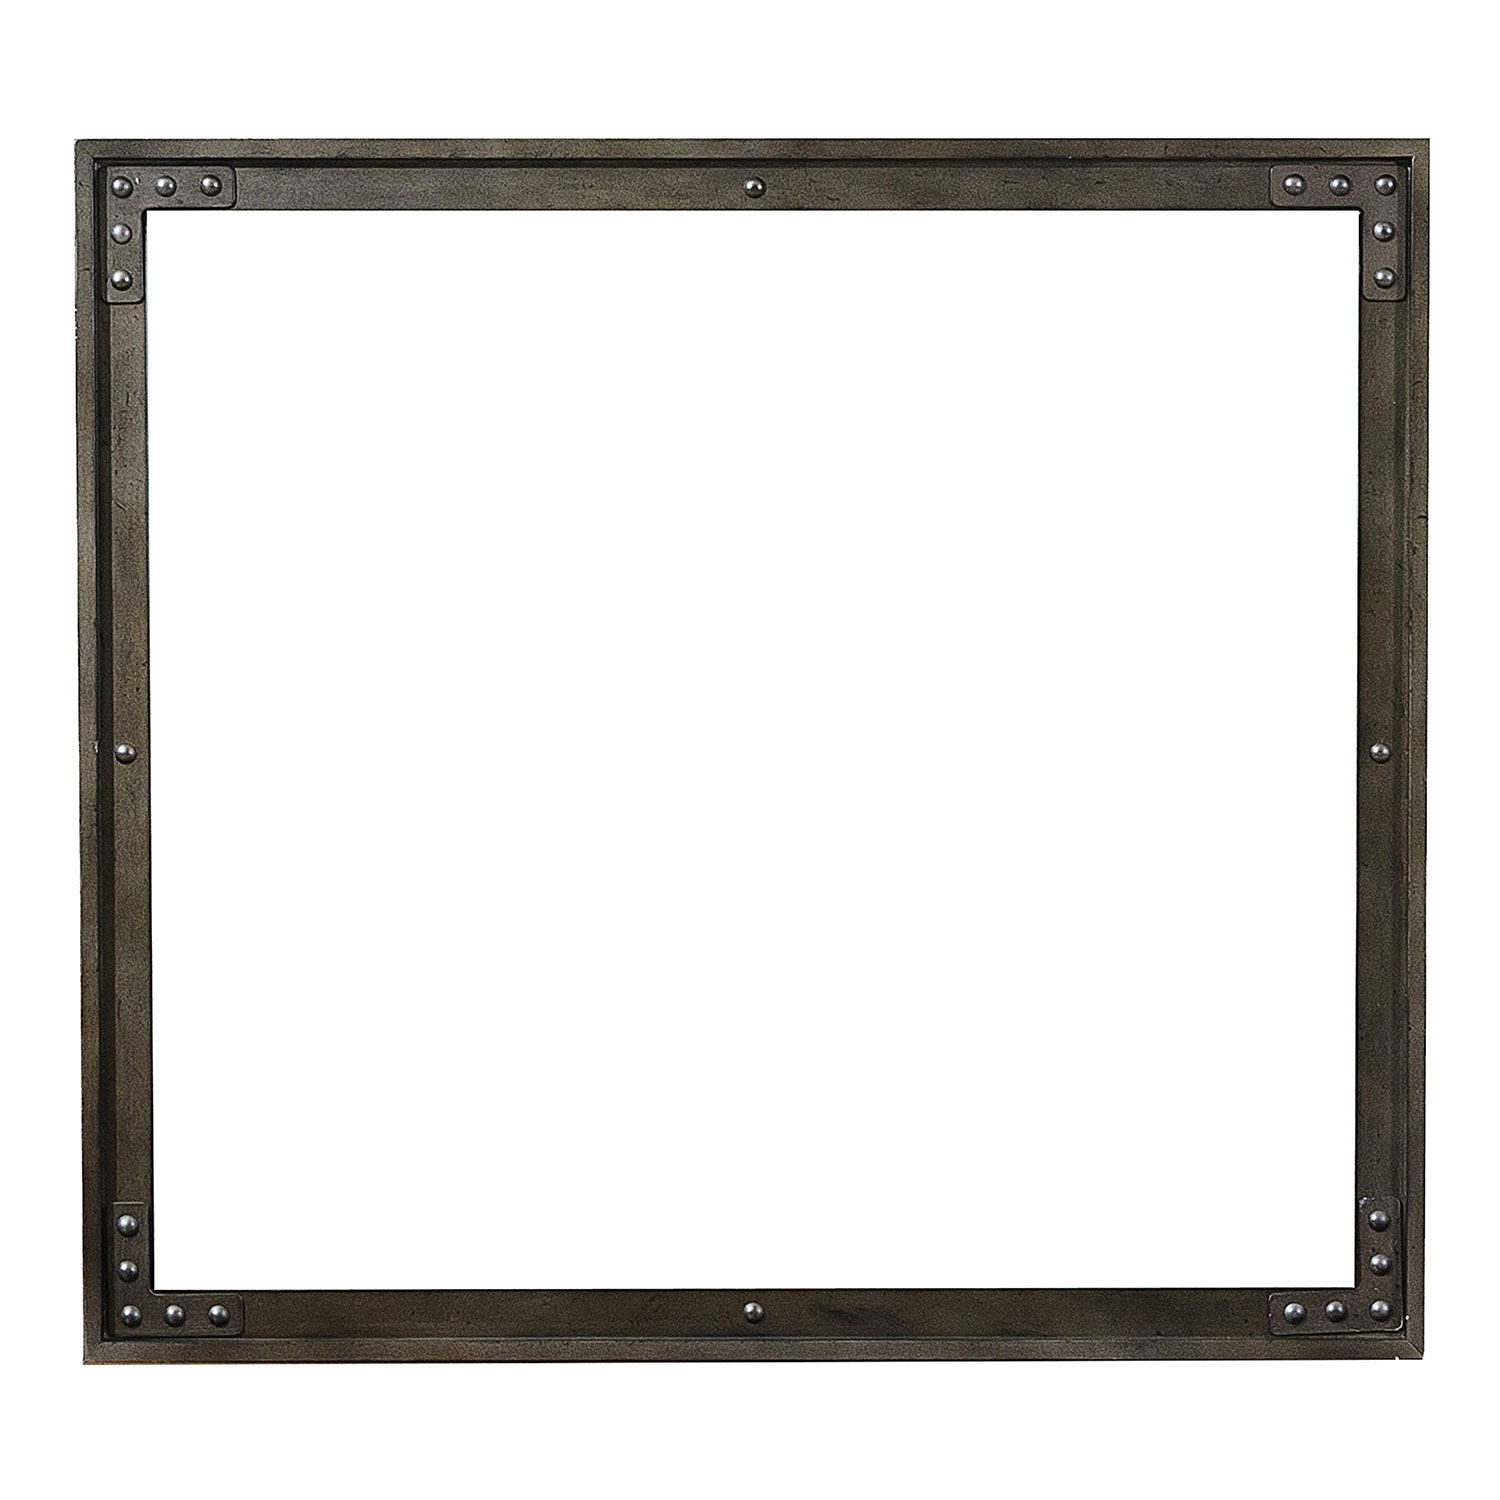 Homelegance Holverson Mirror - Rustic Brown Milk Crate Finish